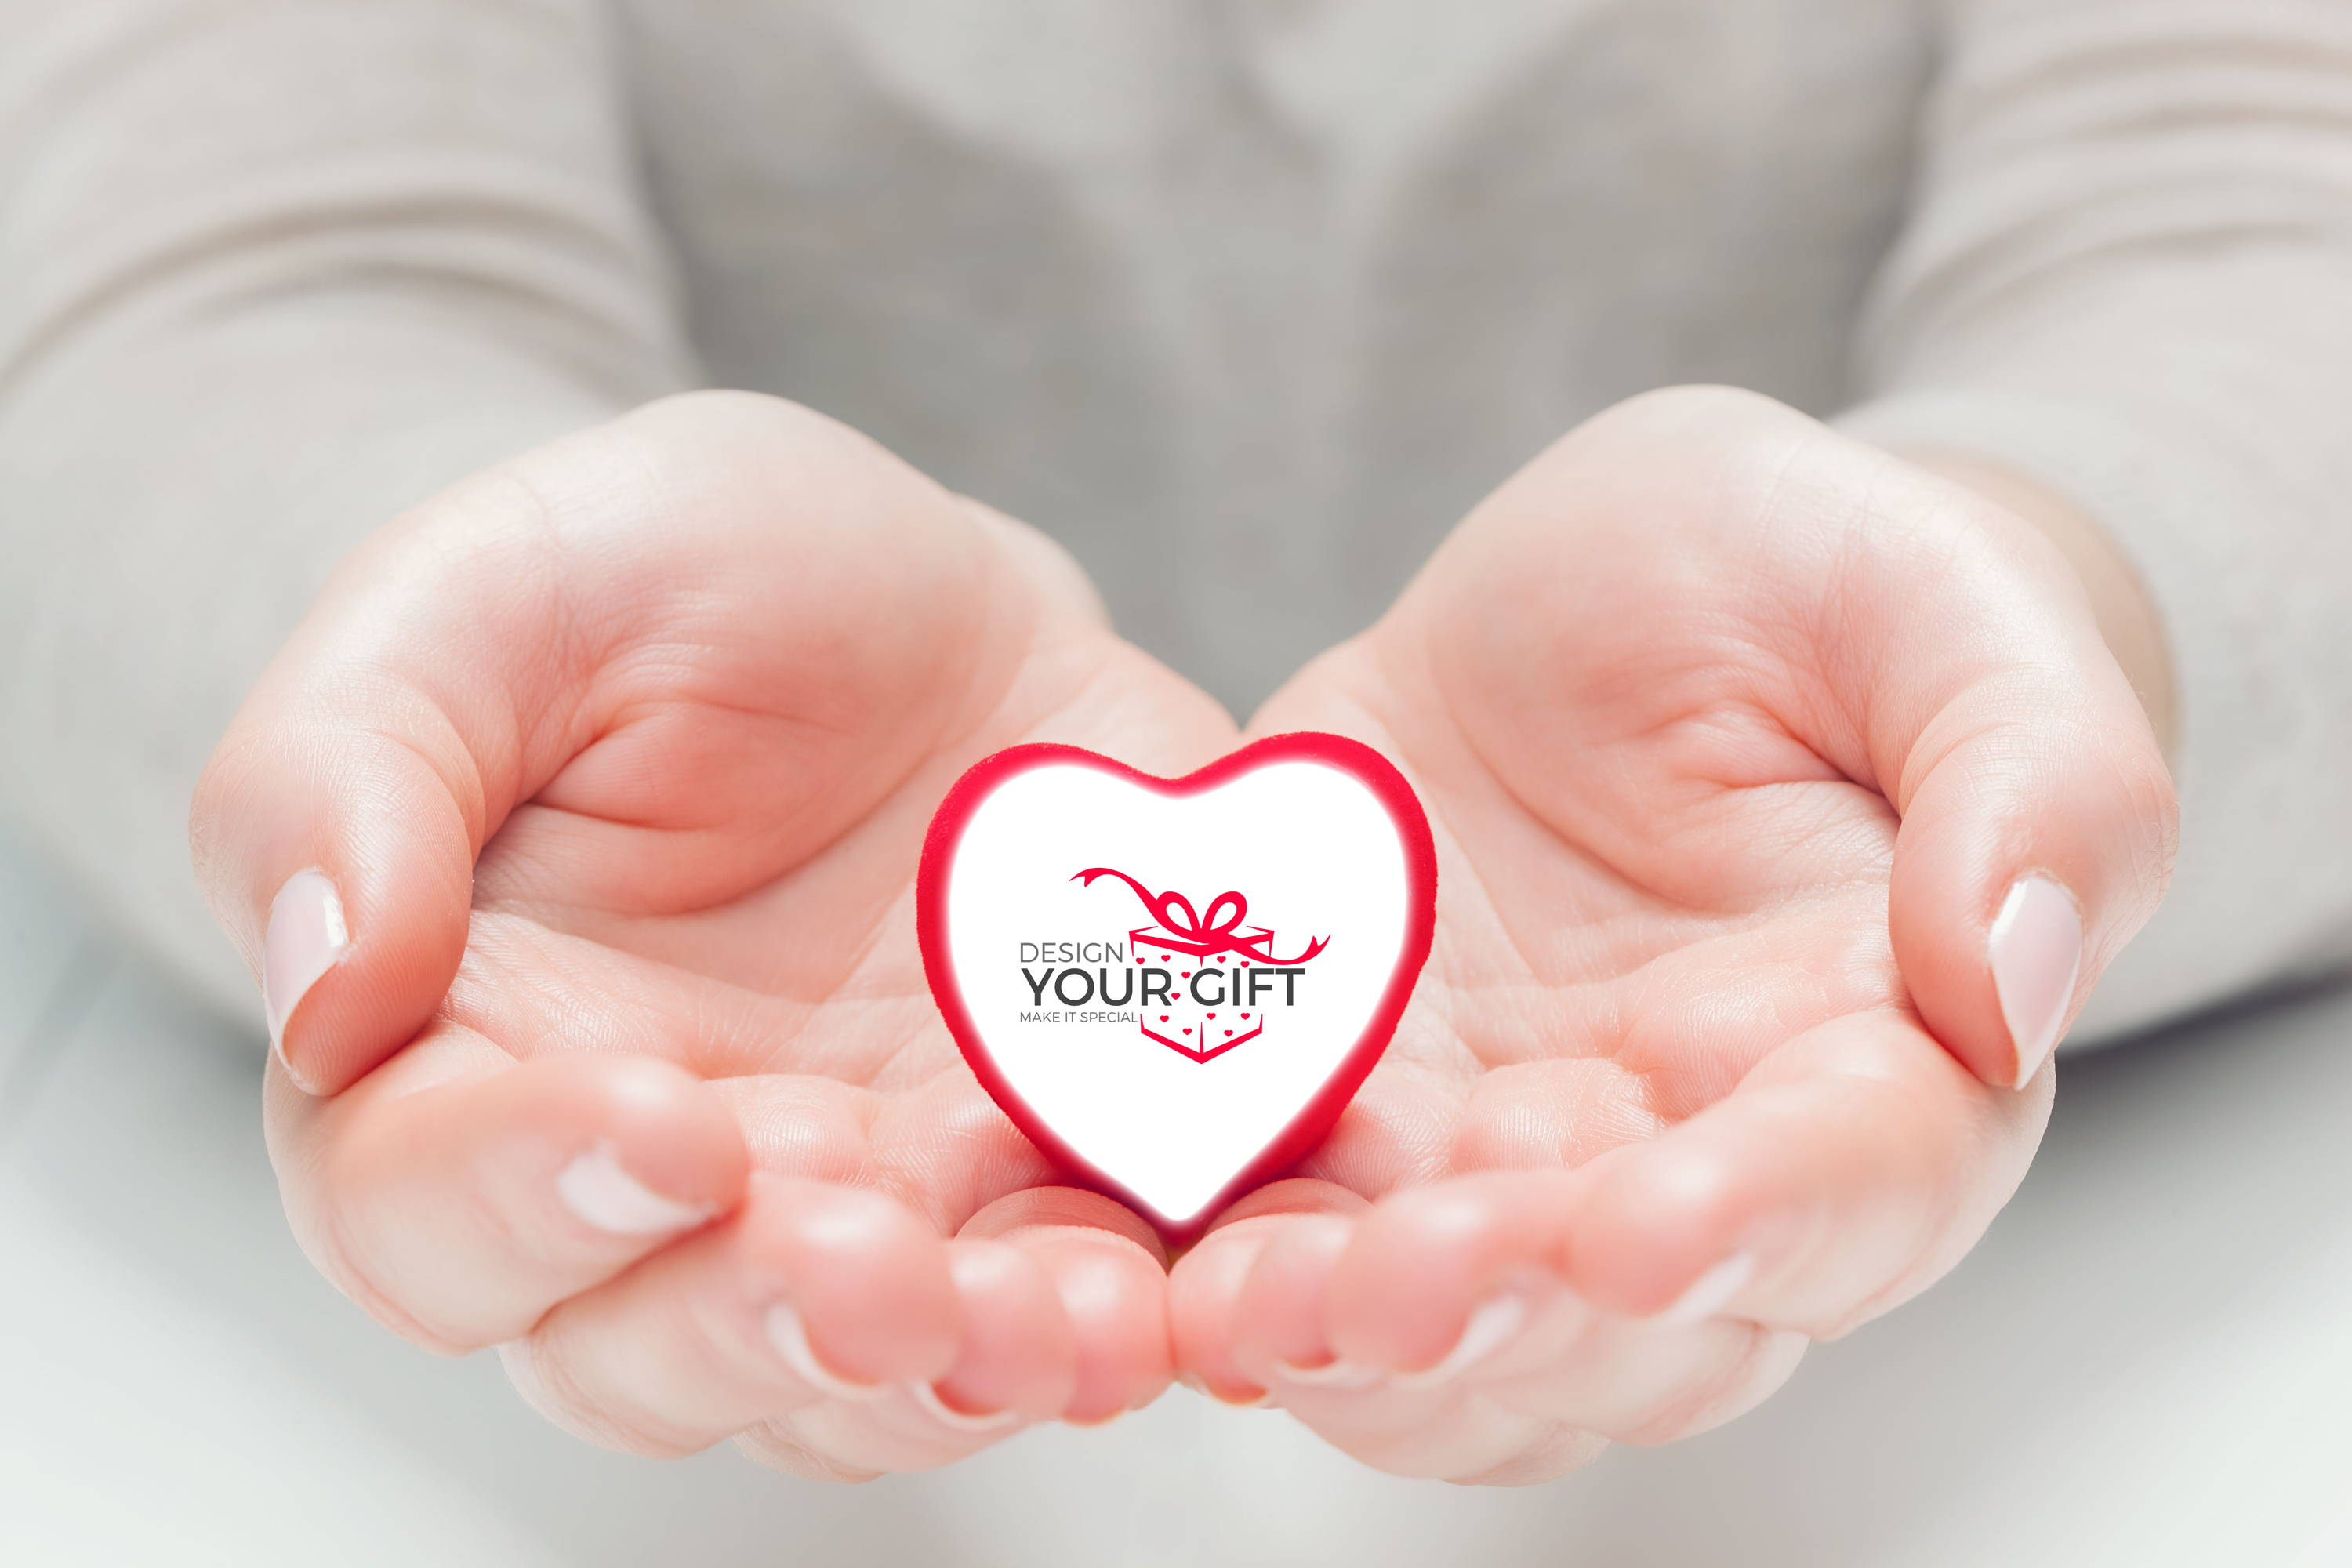 hands holding a heart with design your gift uk logo